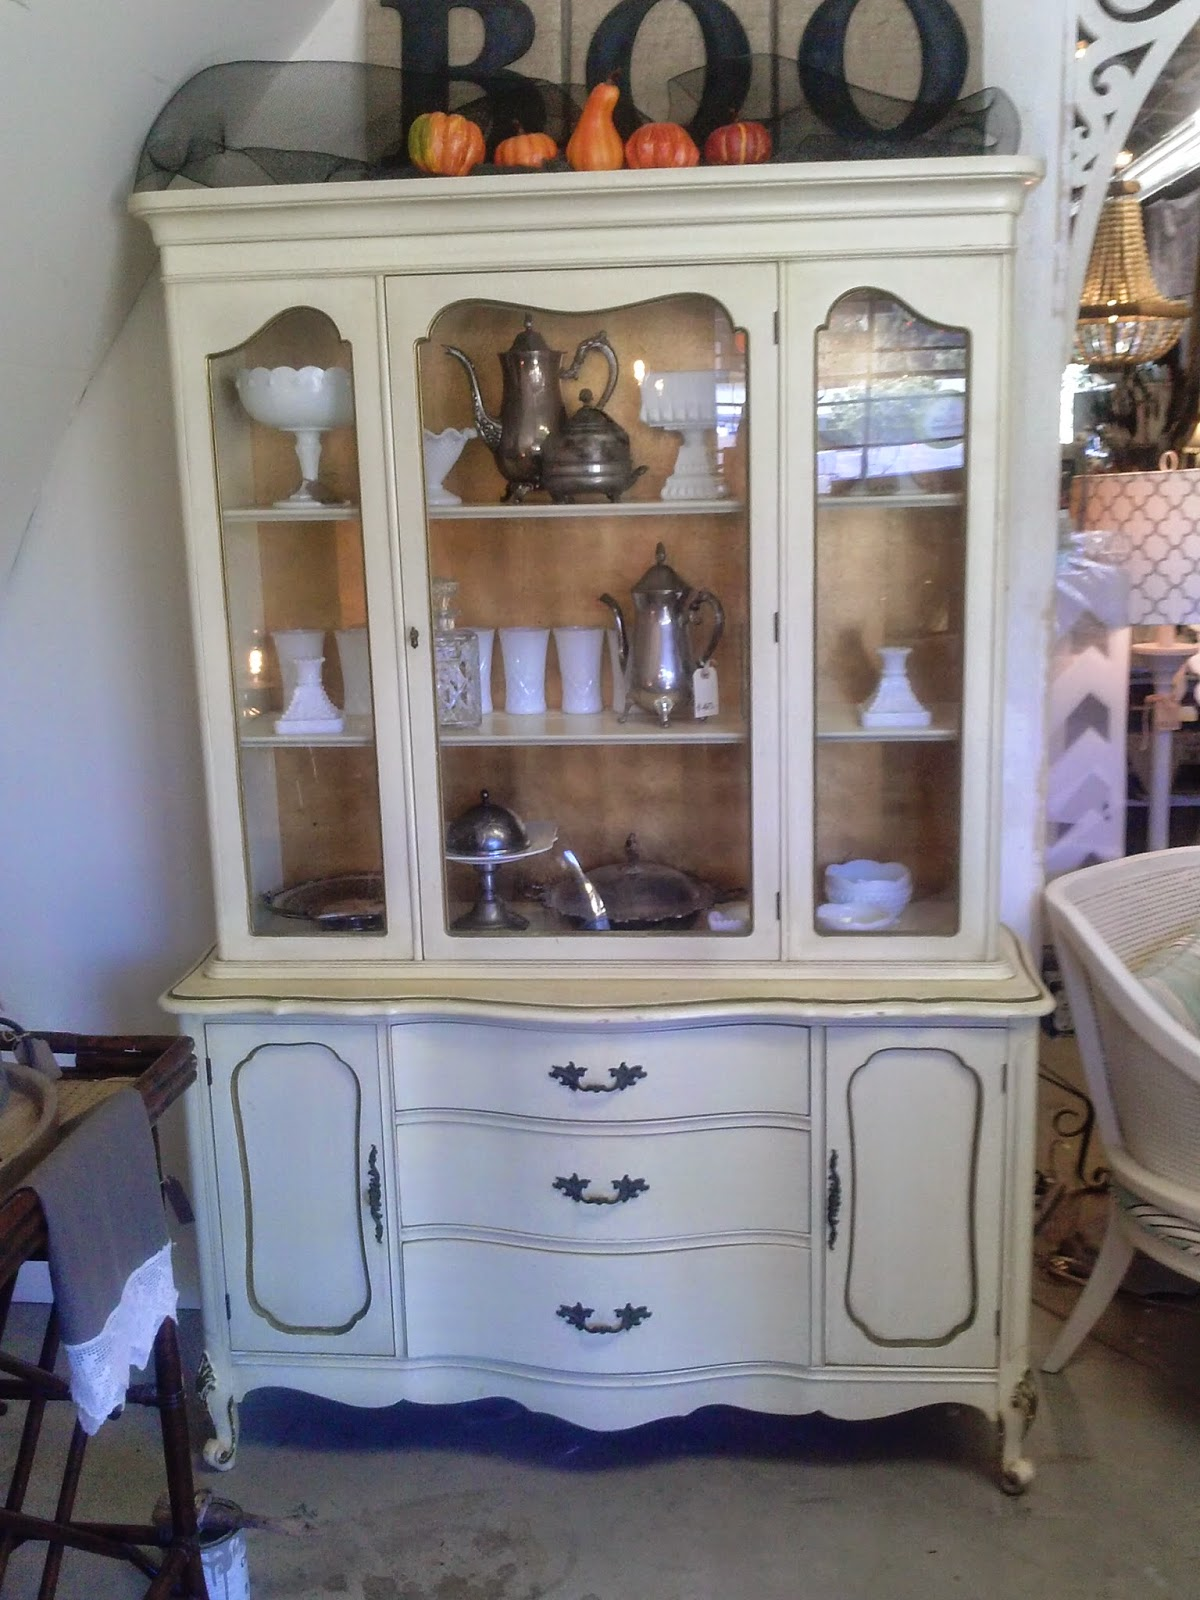 Awesome The hutch was done in the typical cream and gold which is a mon look for the reproduction french provincial furniture made in the us